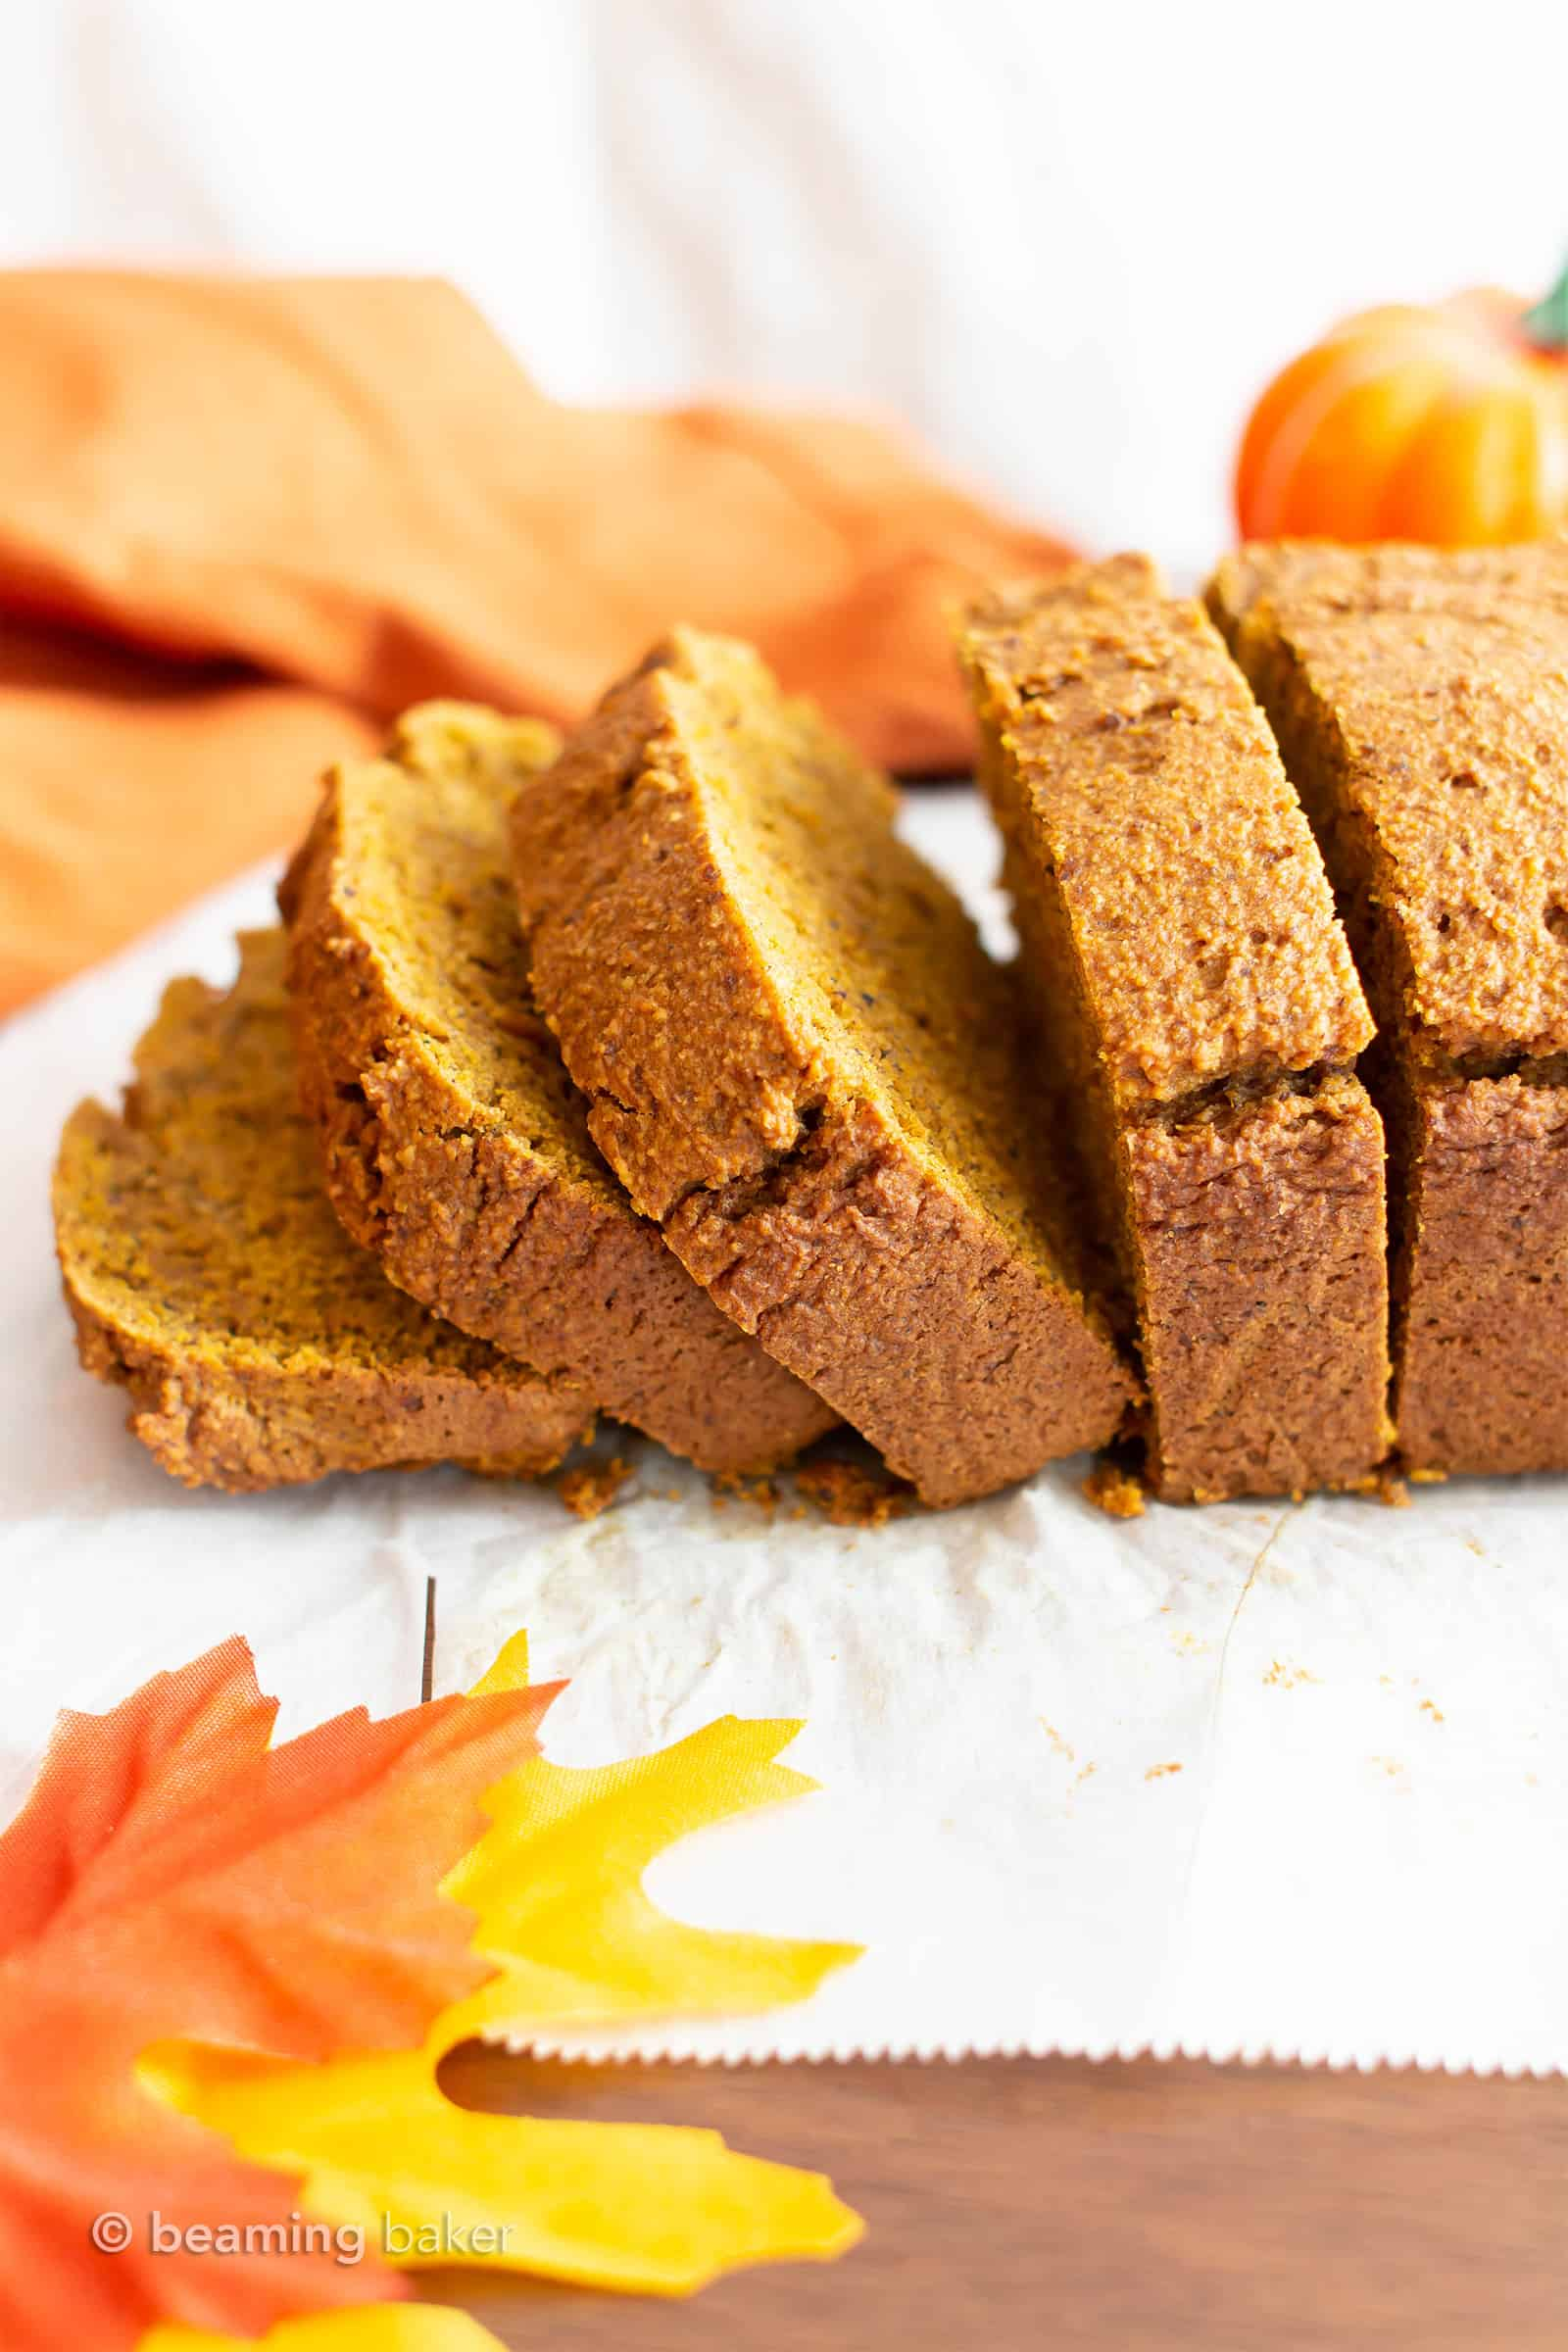 Gluten Free Vegan Pumpkin Bread (GF): this moist, classic gluten free pumpkin bread recipe is flourless, healthy! The best dairy free pumpkin bread—made with oat flour! #Vegan #GlutenFree #Pumpkin #DairyFree | Recipe at BeamingBaker.com